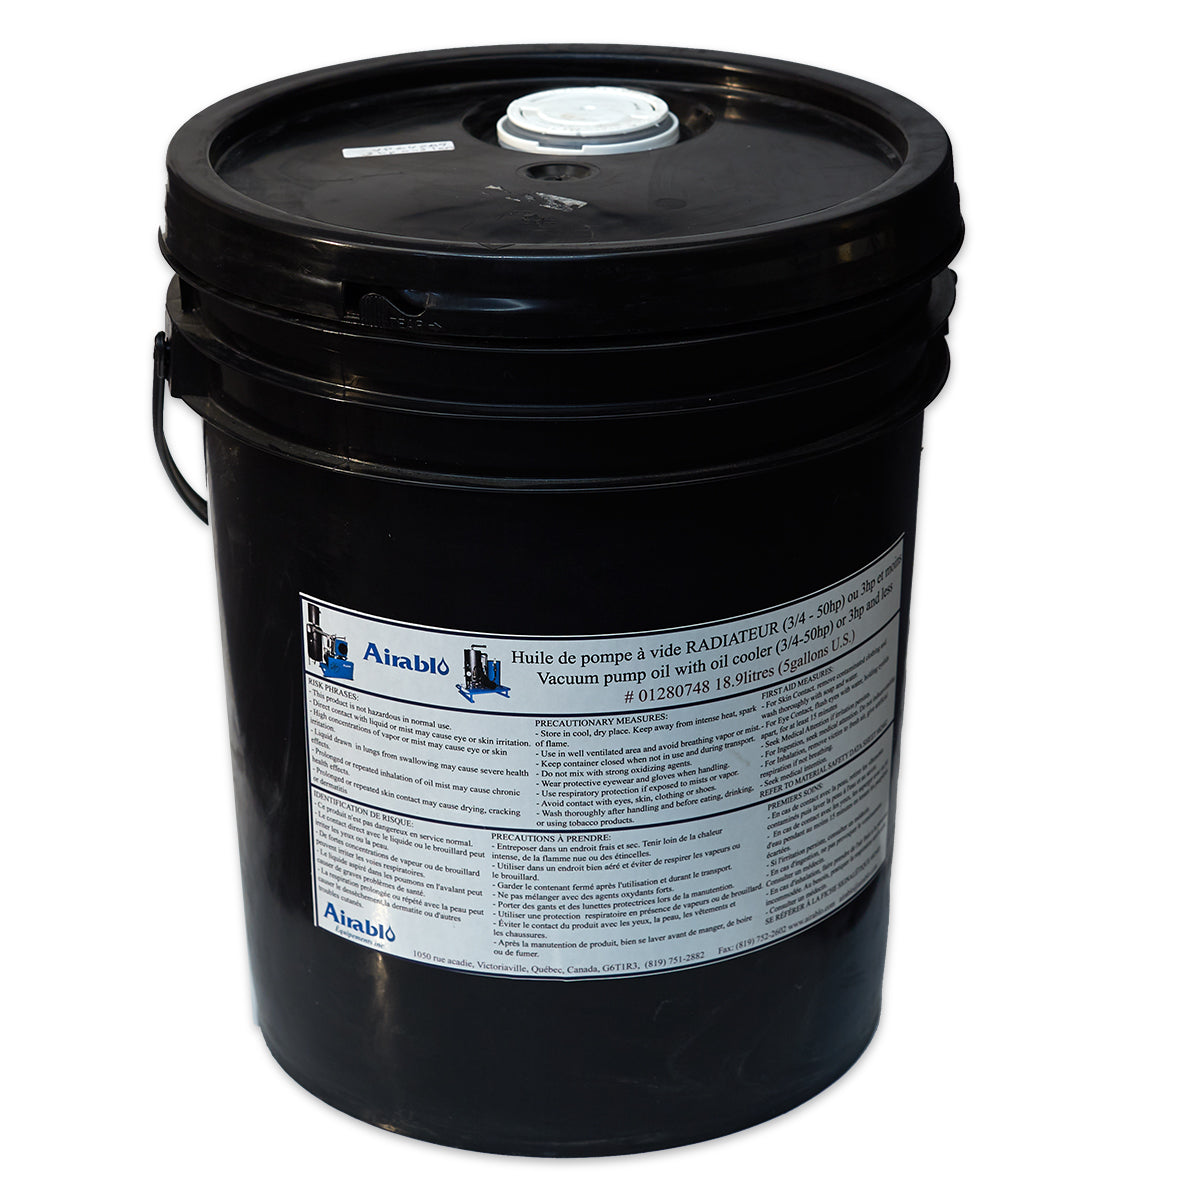 Airablo Vacuum Pump Flood Oil (5 gal. pail) for 3 hp and smaller Airblo Pumps